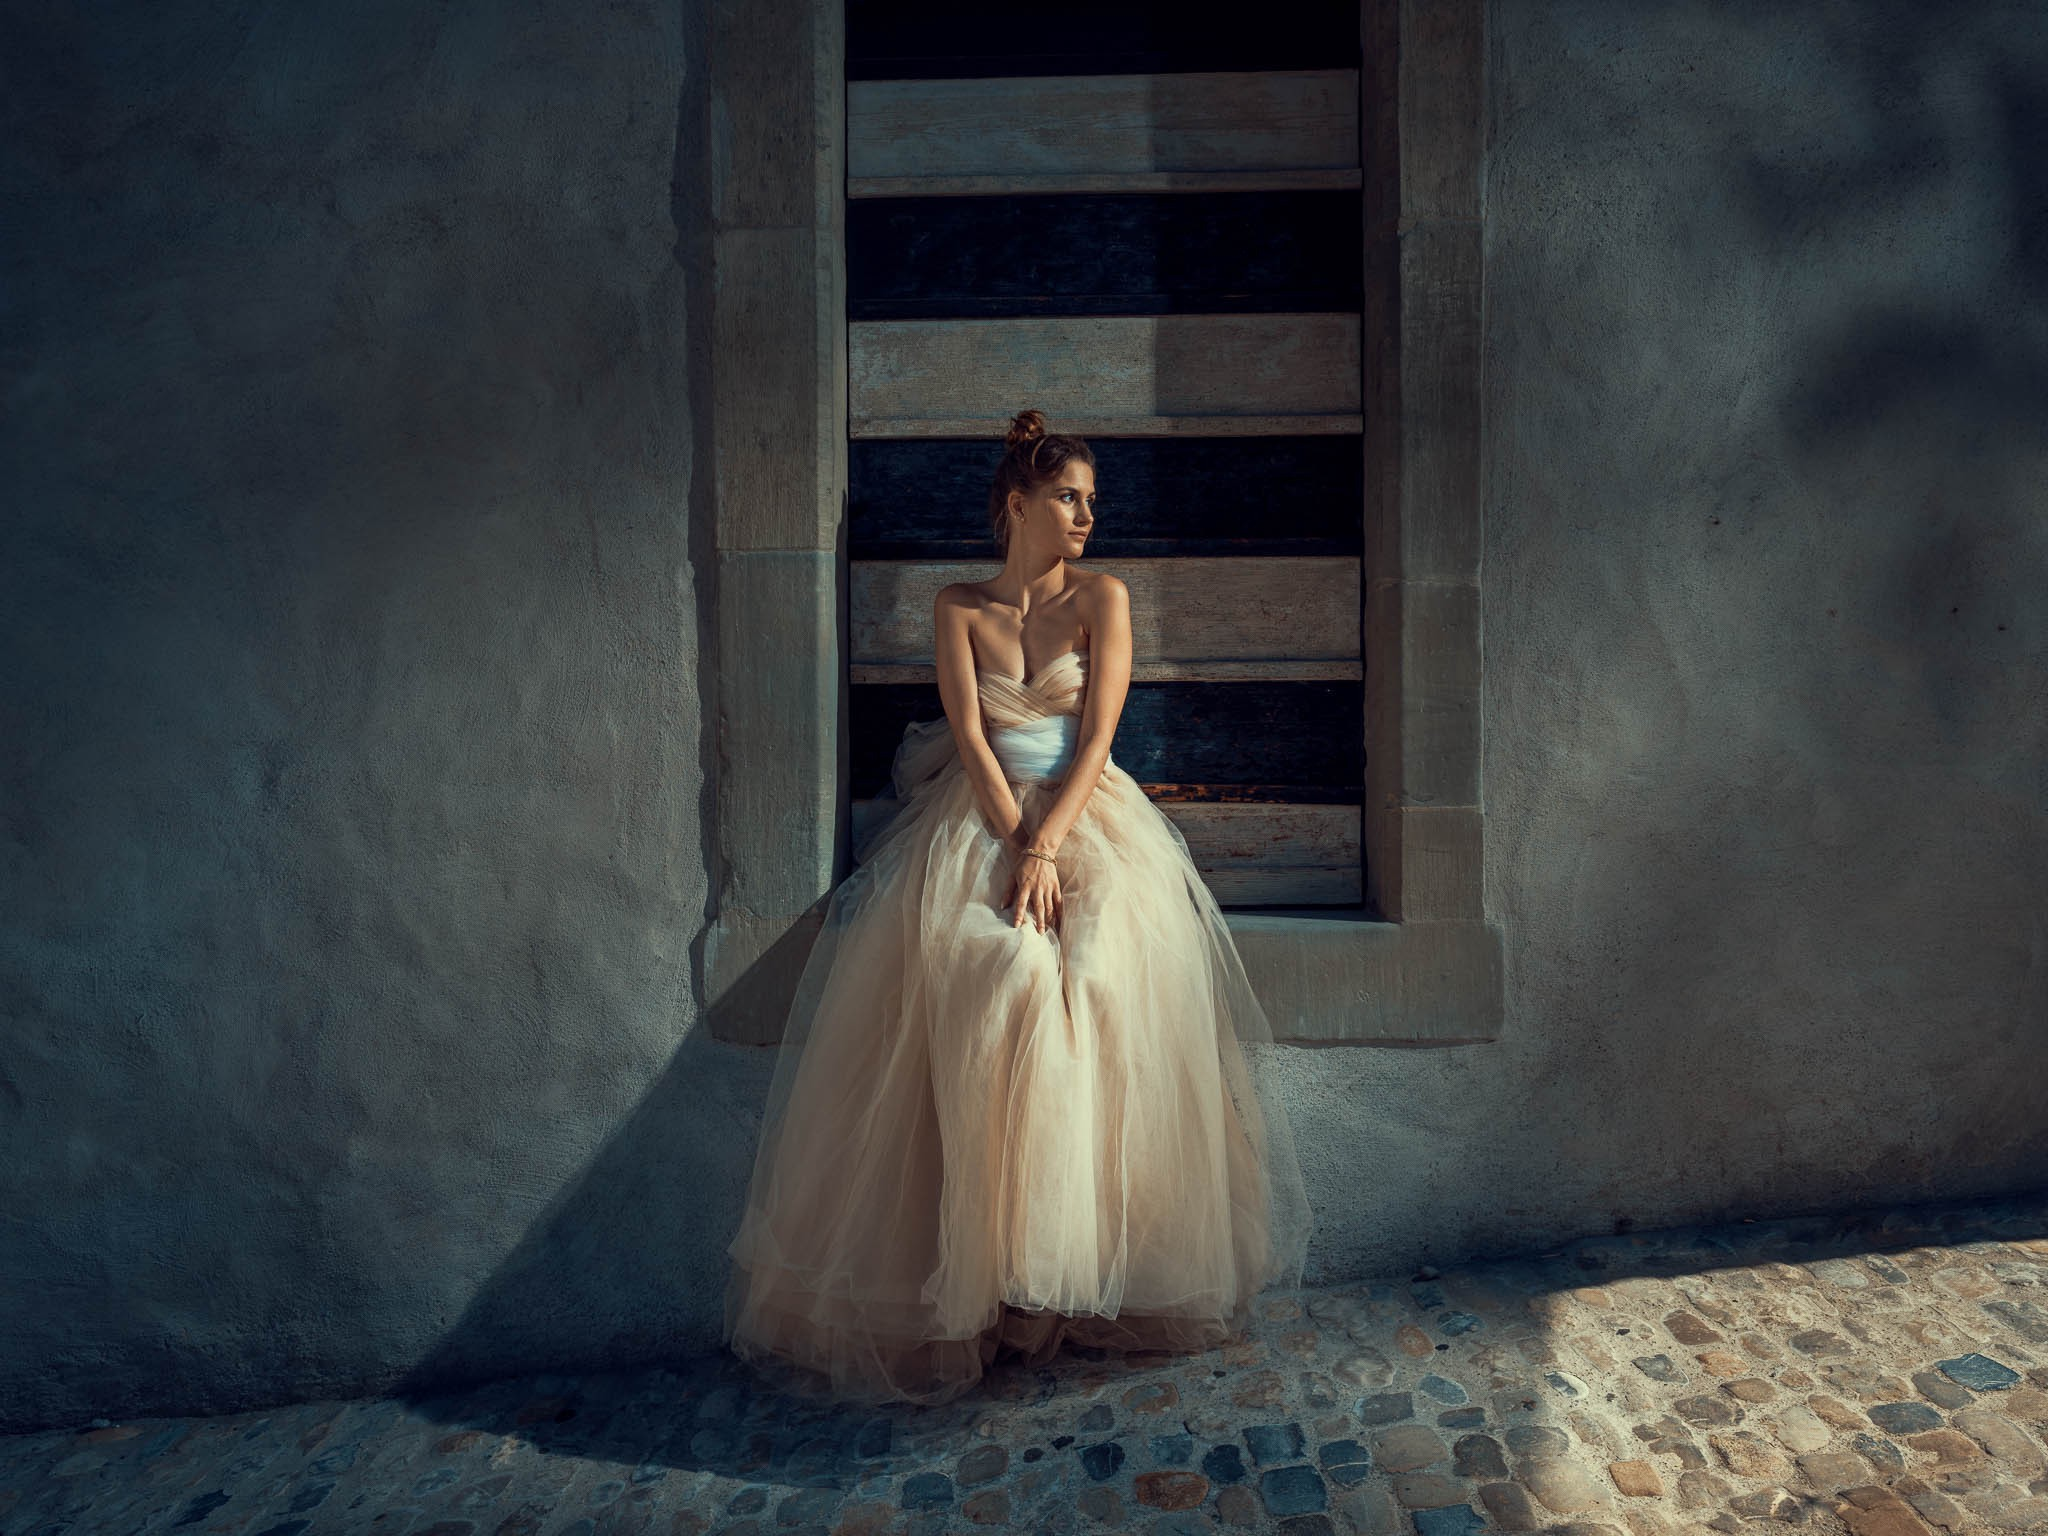 Woman sits and poses in bridal dress for the portrait photographer Damien Lovegrove. RYDE Client.